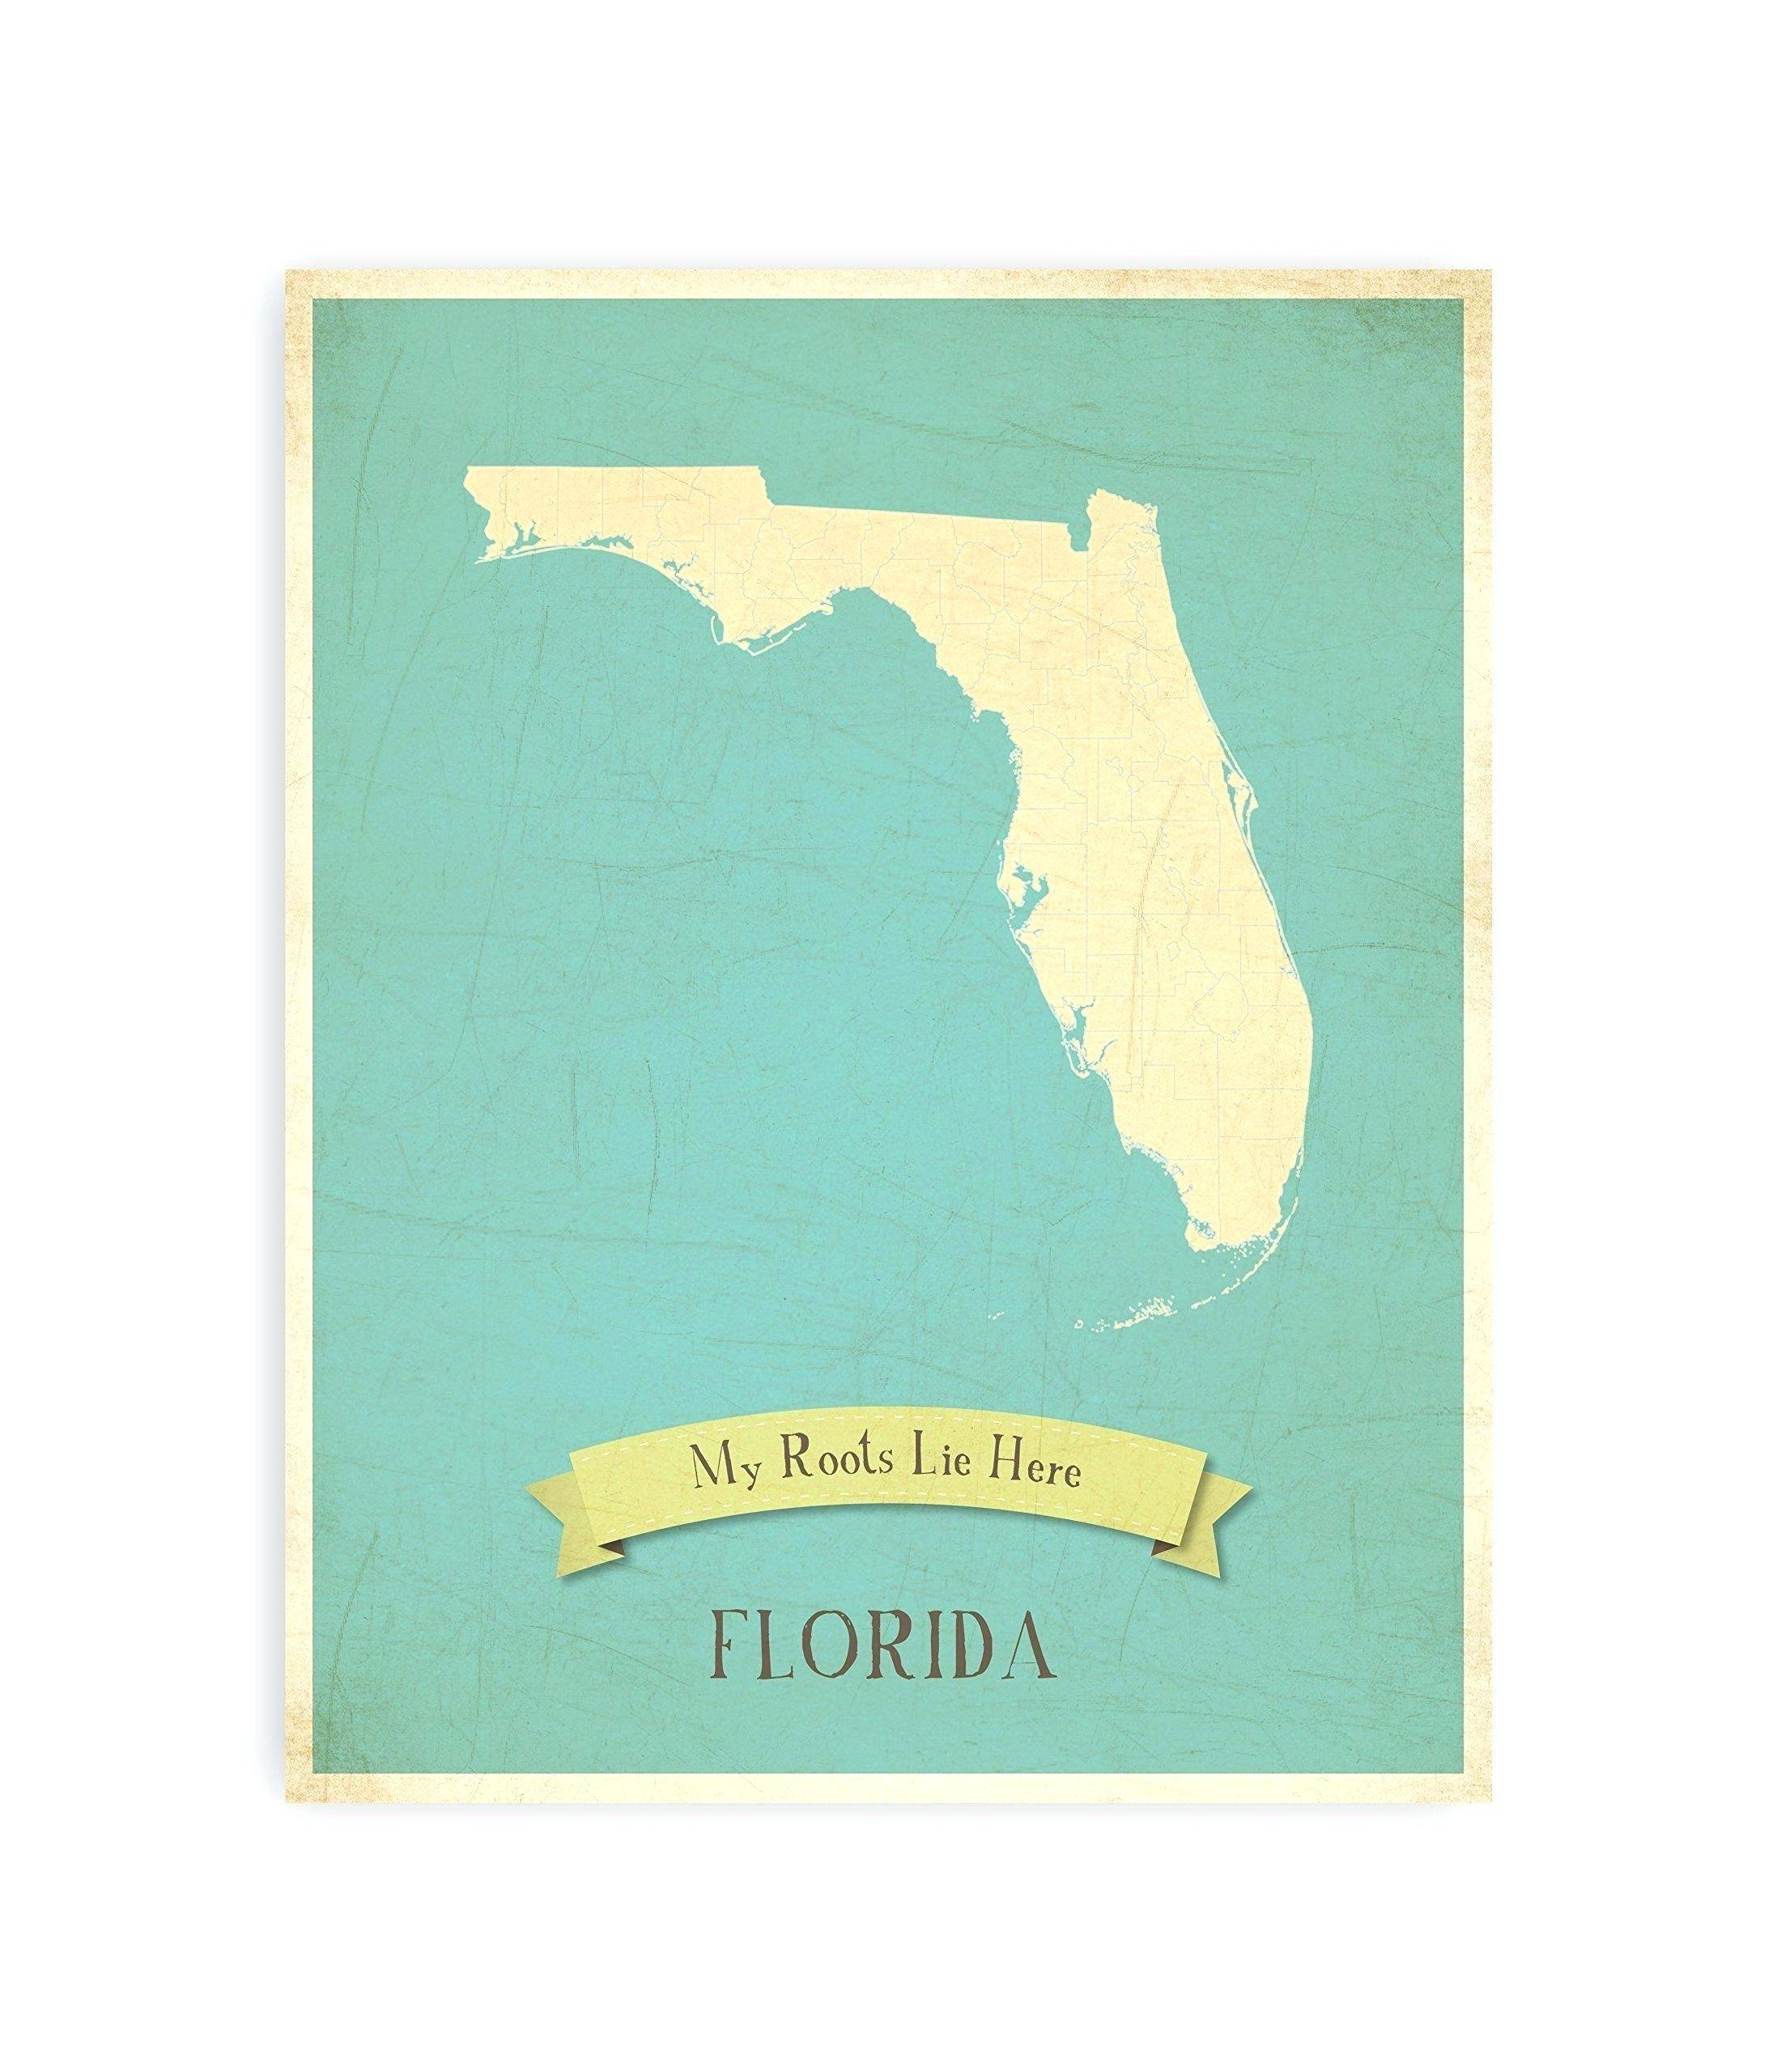 Marvelous Ideas Florida Wall Art Map Etsy – Wall Art Ideas For Current Florida Map Wall Art (View 6 of 20)